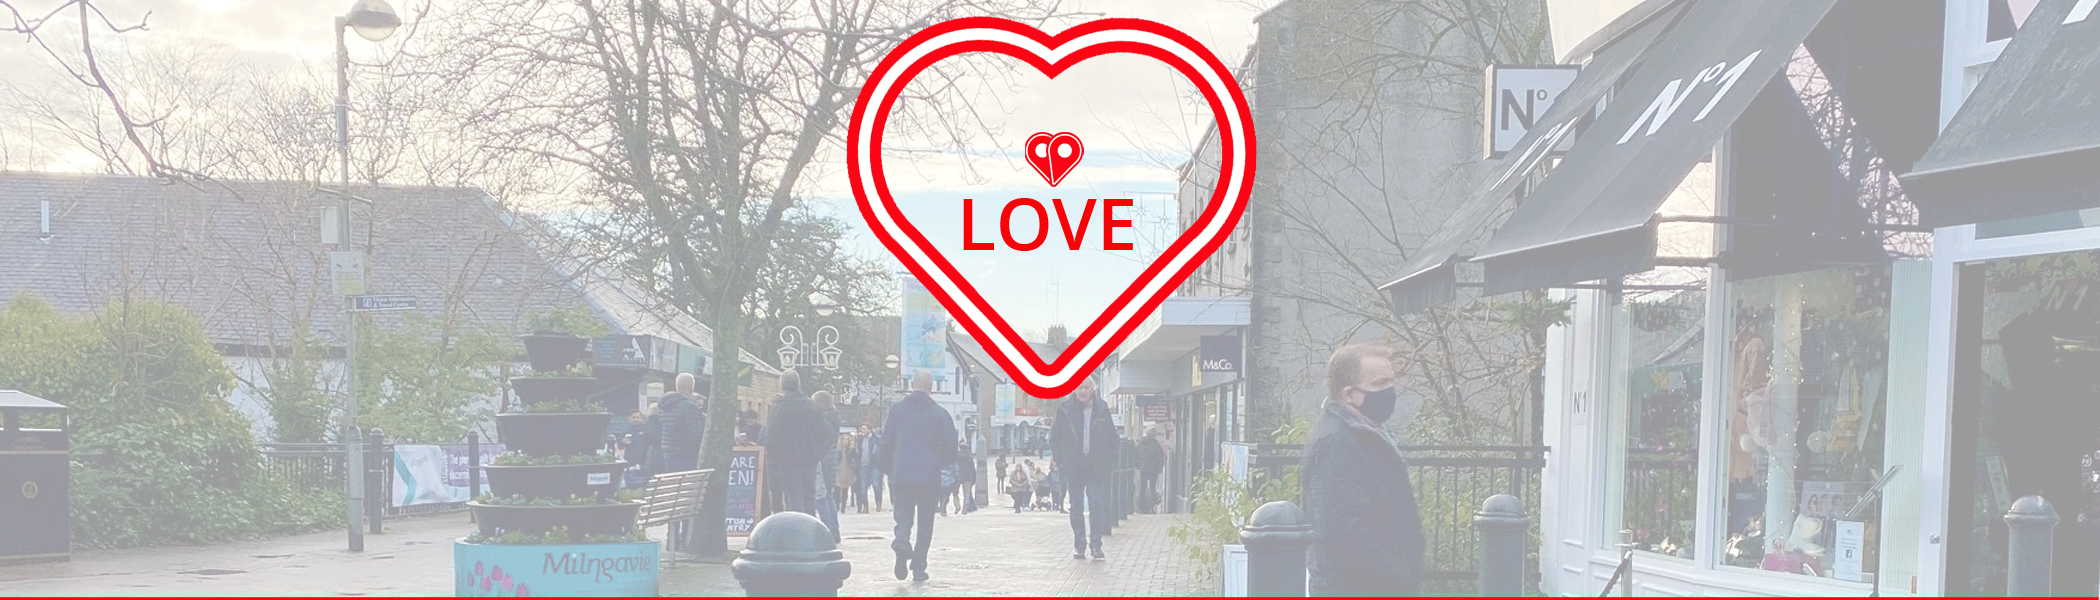 February Love in Milngavie